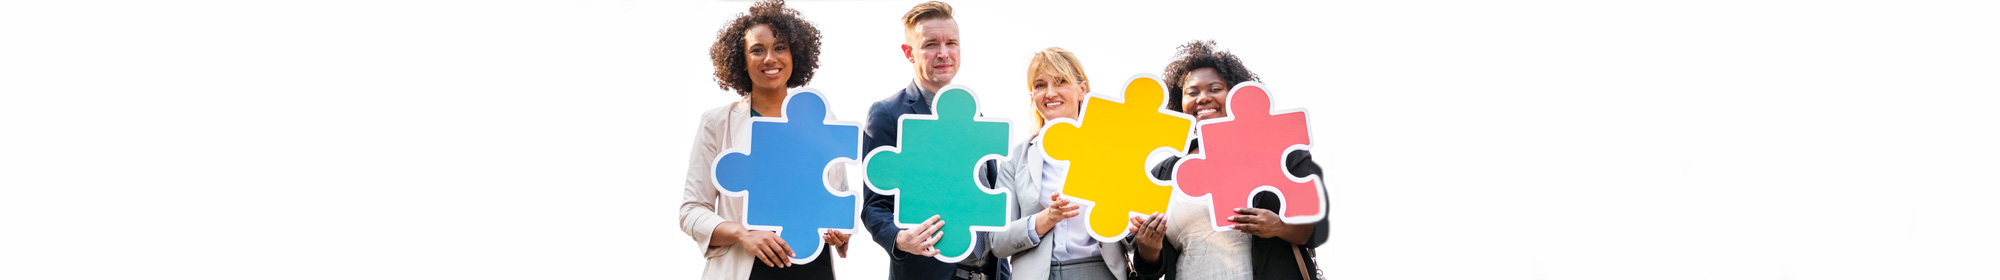 diverse partners connected with puzzle pieces